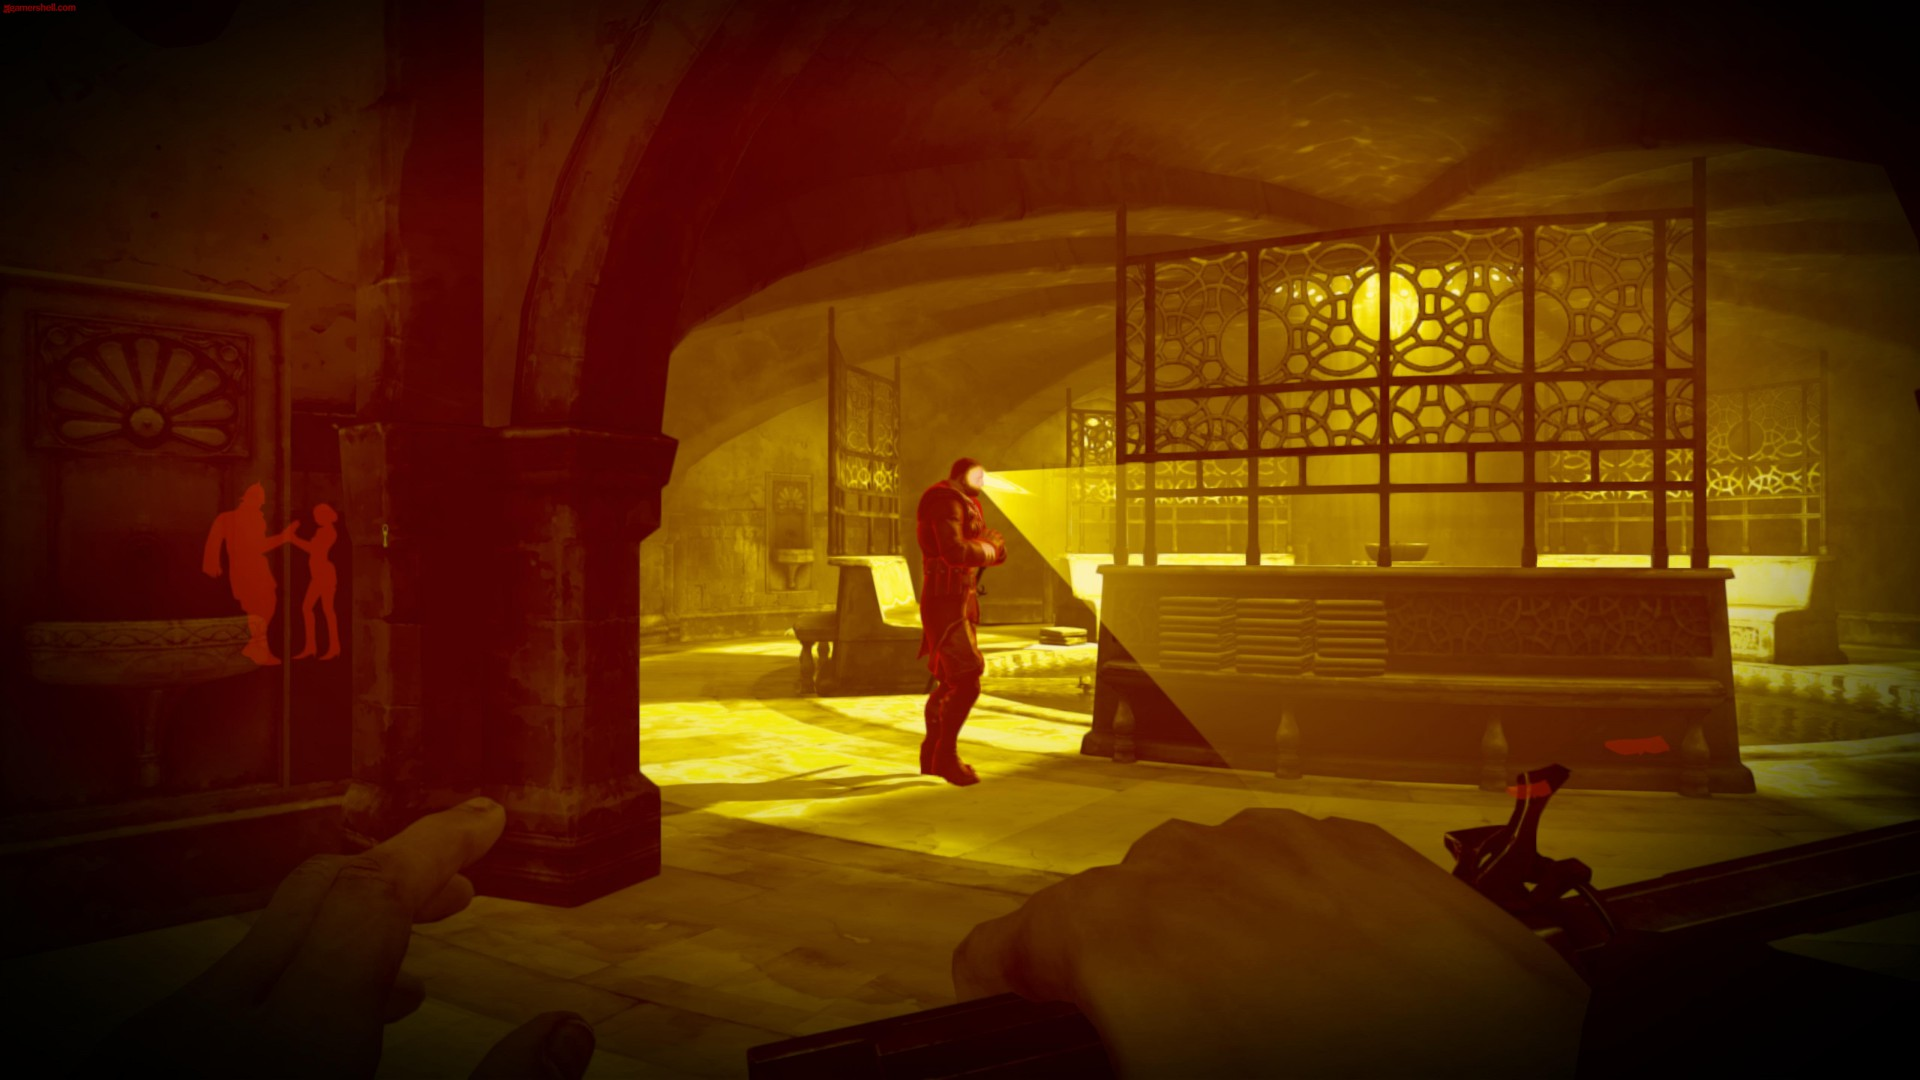 Dishonored, game, stealth, gameplay, screenshot, fan art, Chloe Moretz, light, monster, creepy (horizontal)